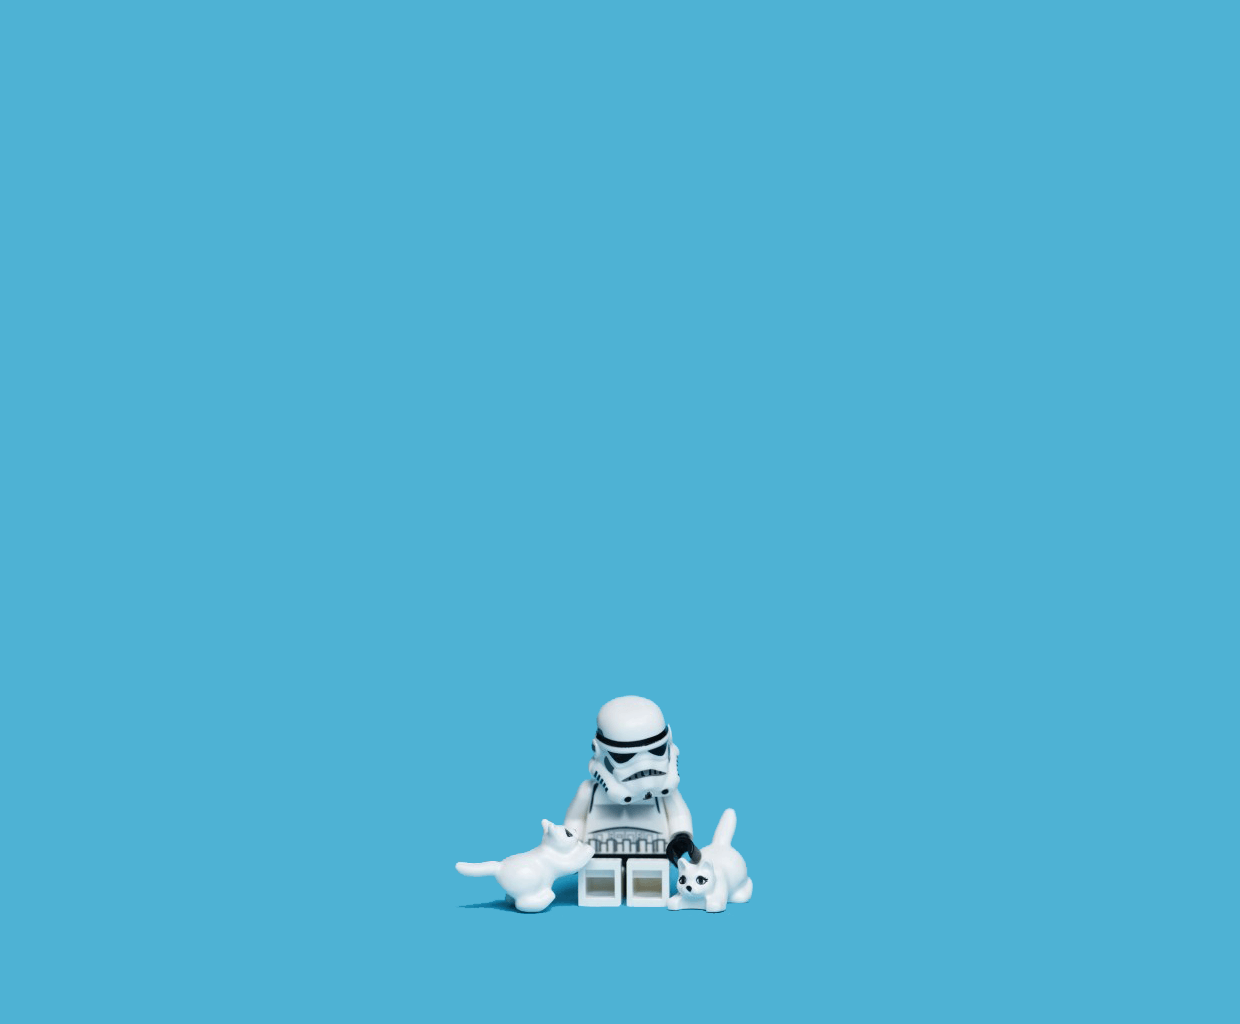 Star Wars Cute Wallpapers Top Free Star Wars Cute Backgrounds Wallpaperaccess